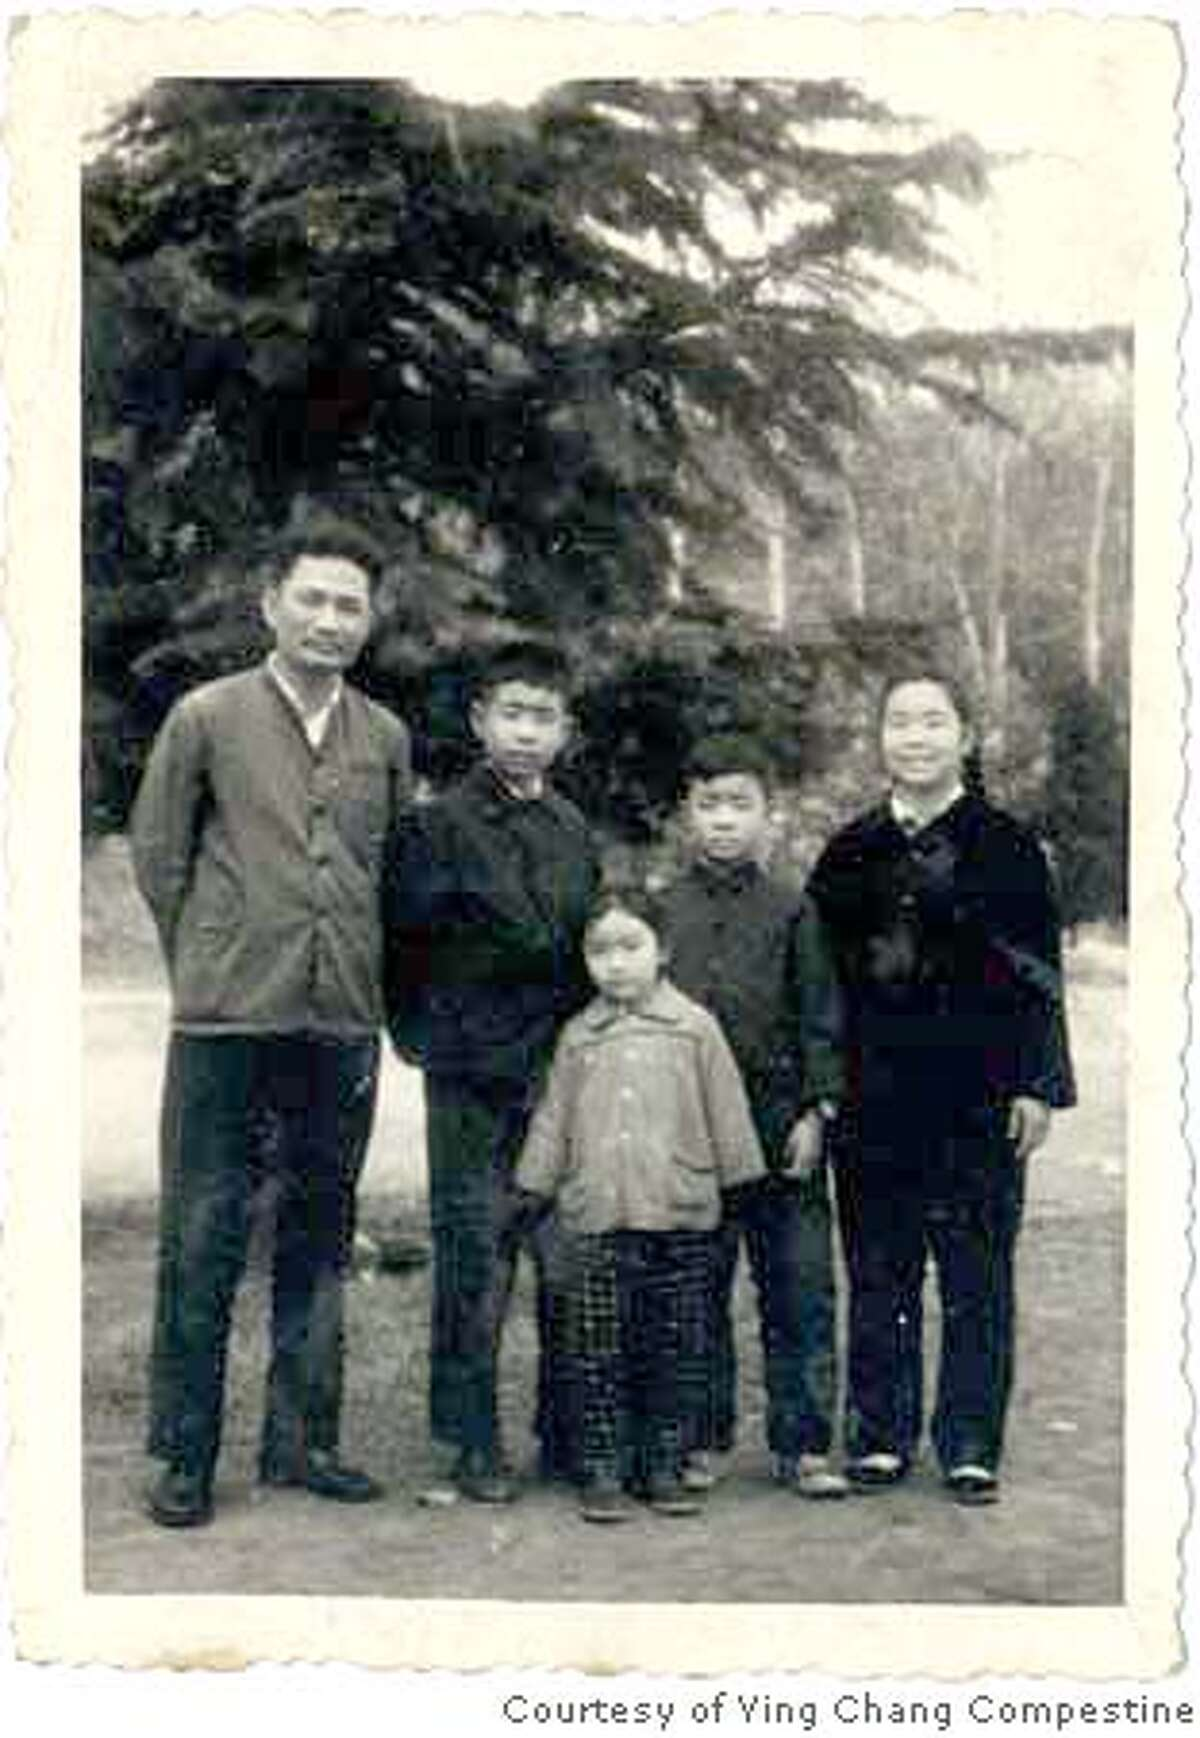 Caption for family-b shot : The Changs in Wuhan, before the Cultural Revolution (left to right): brother Tao; father, Xin Liu; Ying; Mother , Xi Guang Xiong; and brother Bo Ying Chang Compestine 863 Birdhaven Ct Lafayette CA 94549 Ran on: 10-04-2007 As a child, Ying Chang Compestine saw the Golden Gate Bridge as a symbol of freedom. It also inspired the author, shown below (center) with her family, who lived through the Cultural Revolution.